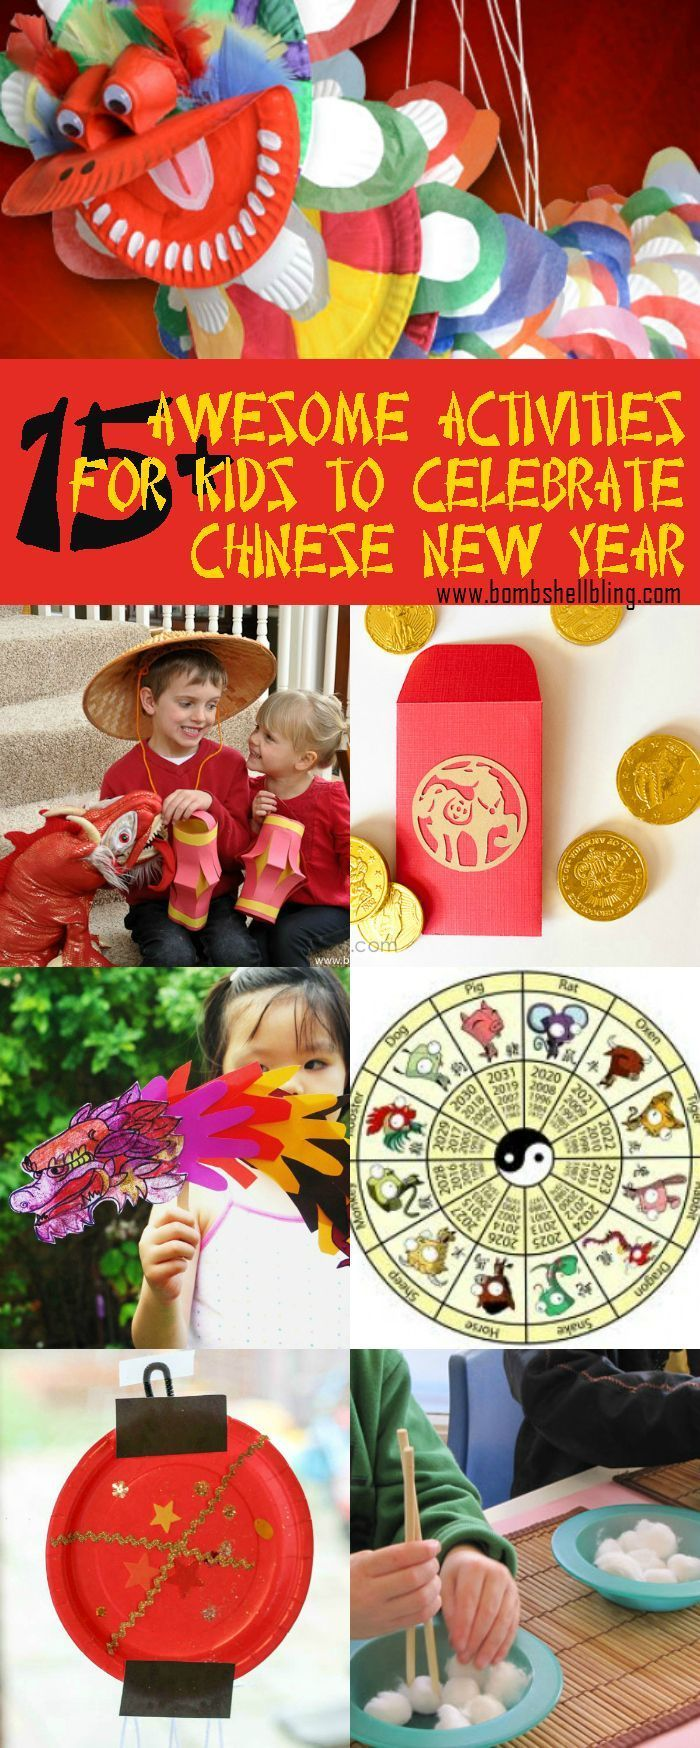 15 chinese new year activities for kids i love these ideas food kid - Chinese New Year Activities